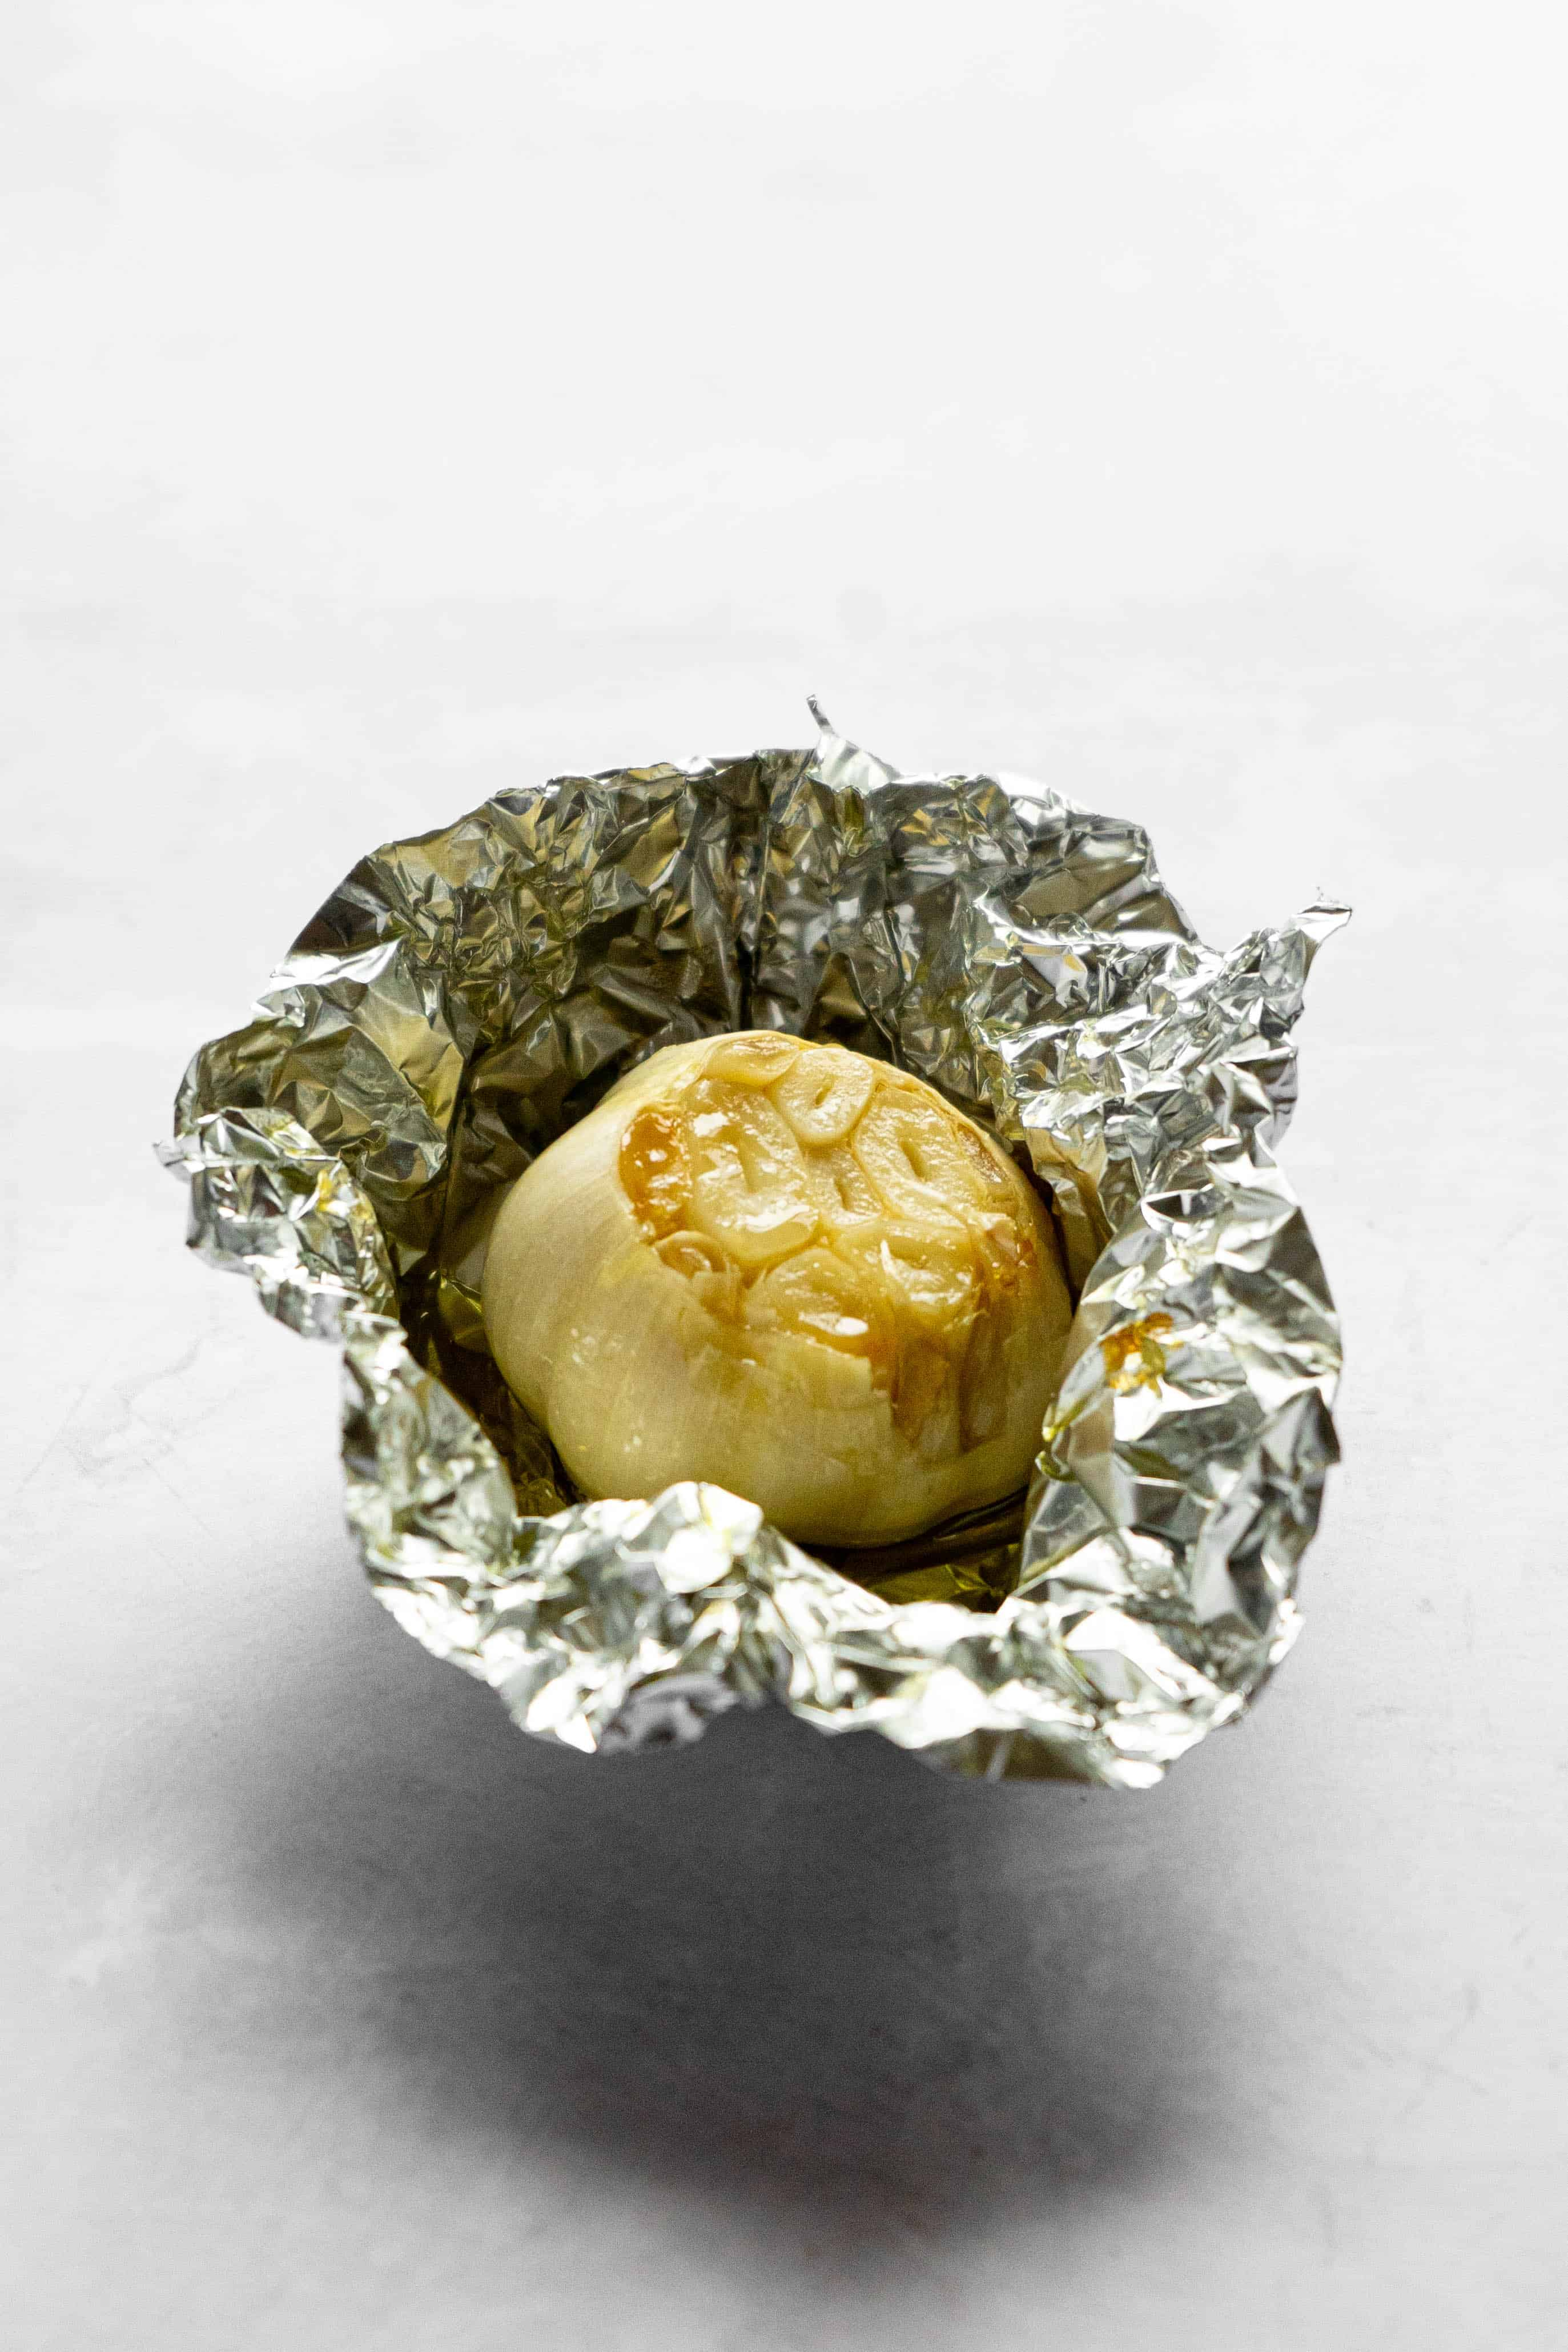 An aluminum foil pouch with roasted garlic and olive oil.